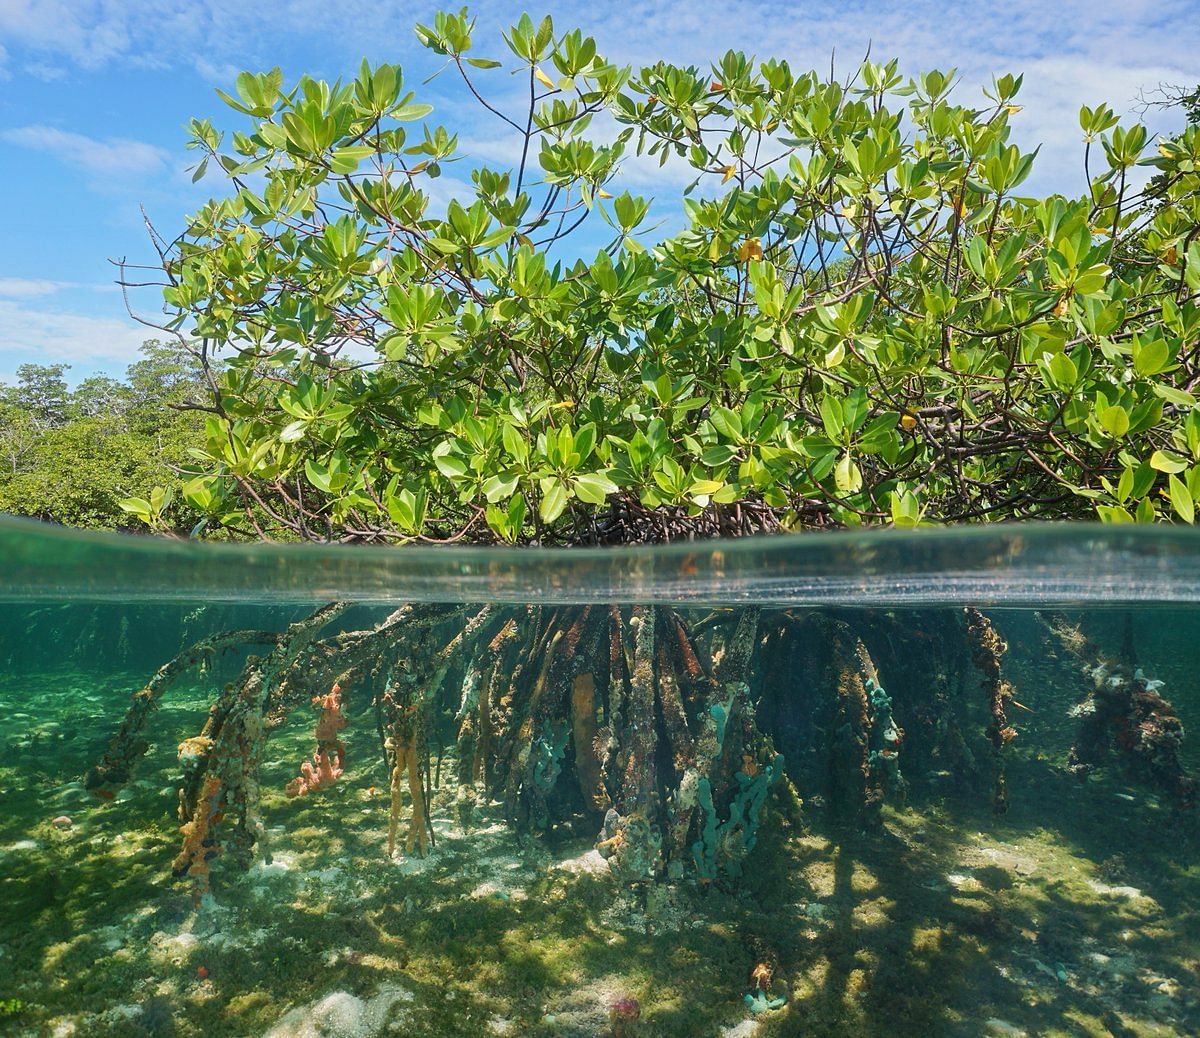 It's a matter of mangroves' survival